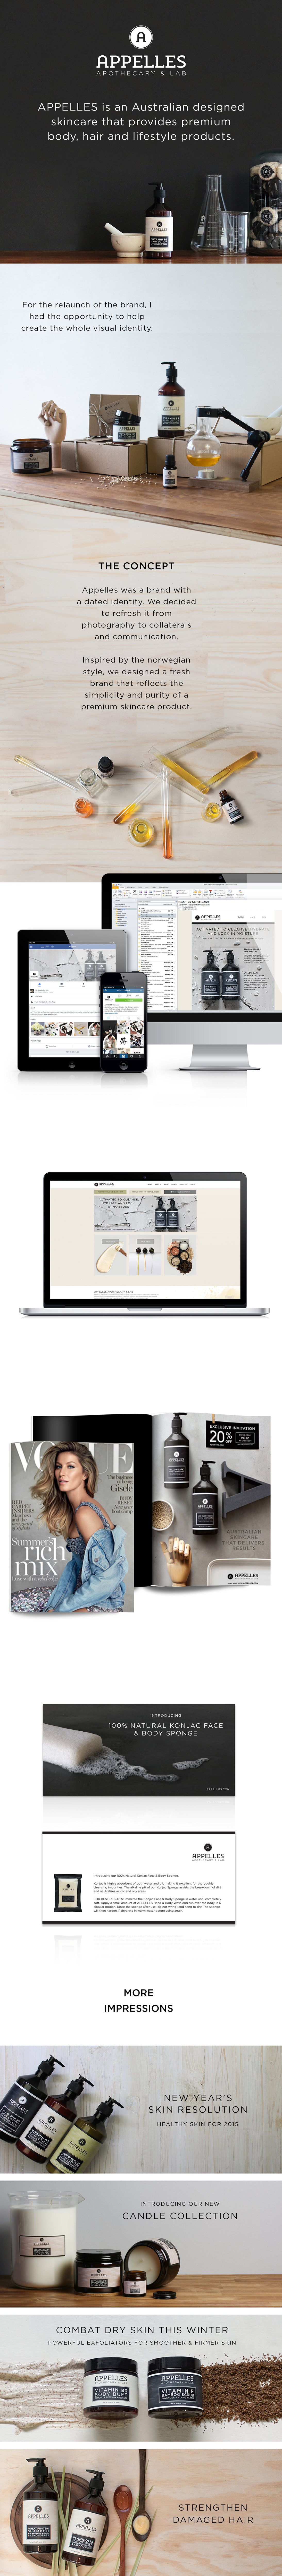 skincare haircare styling  visual identity collaterals communication photos norwegian style simplicity purity premium